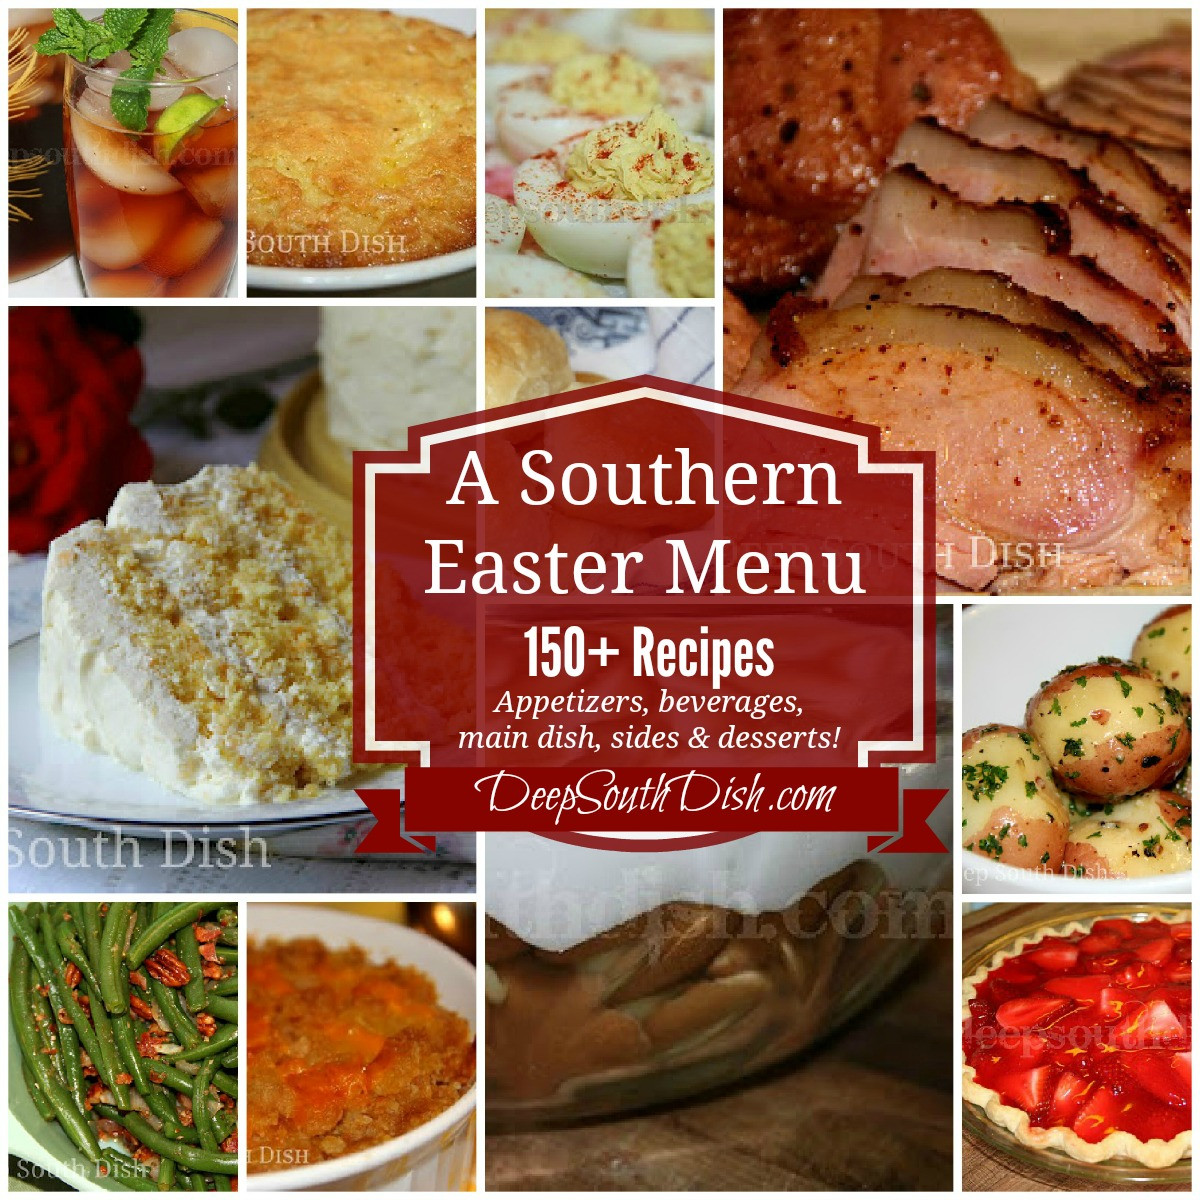 Southern Easter Dinner Menu  Deep South Dish Southern Easter Menu Ideas and Recipes